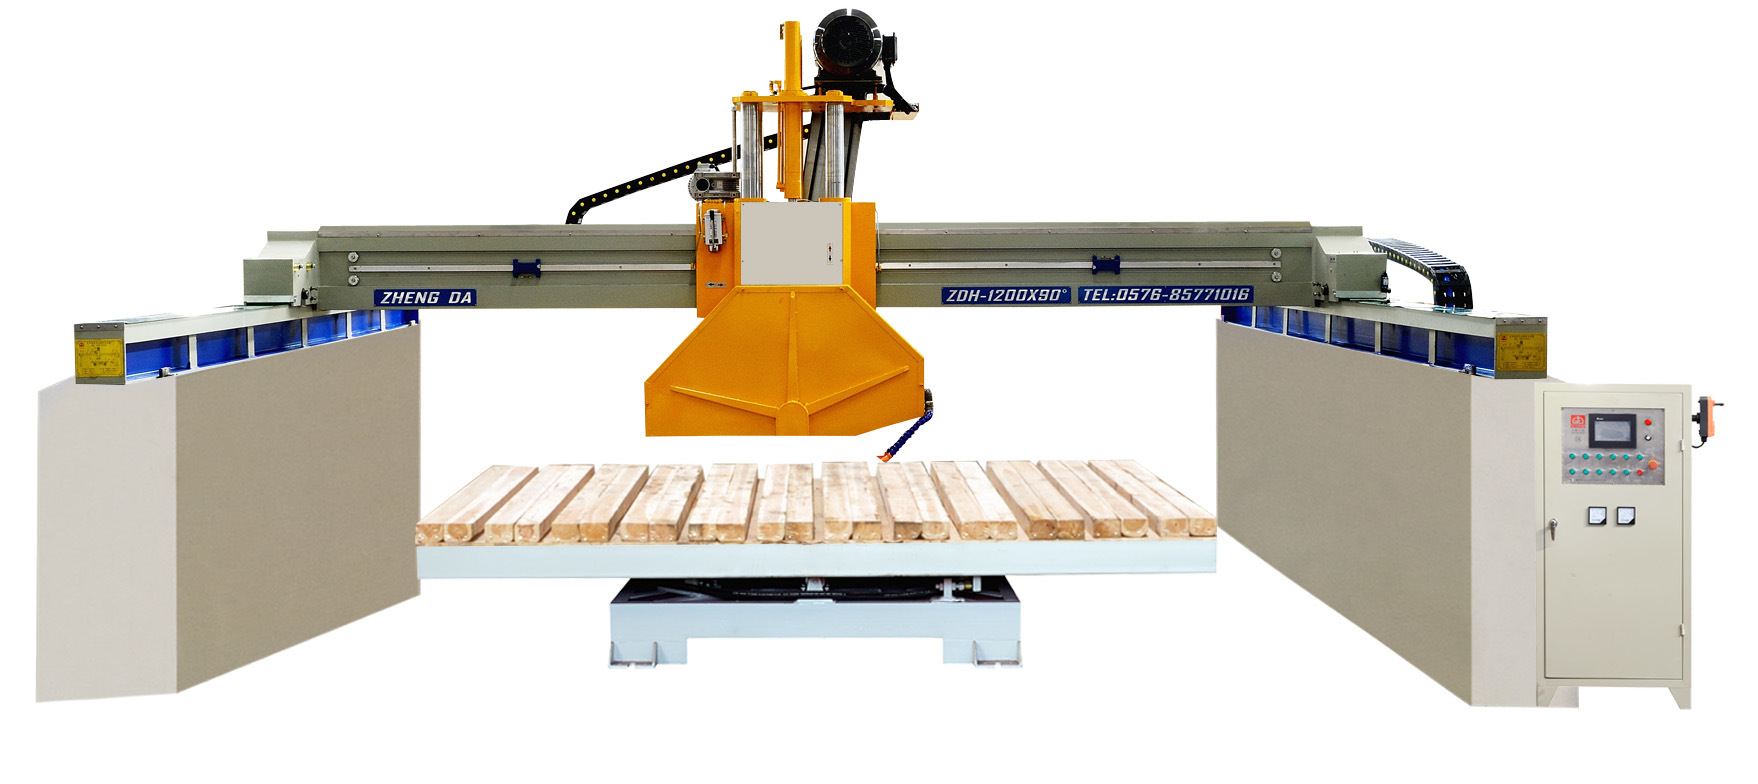 Automatic Middle Block Cutter by Laser (ZDH-1200A)